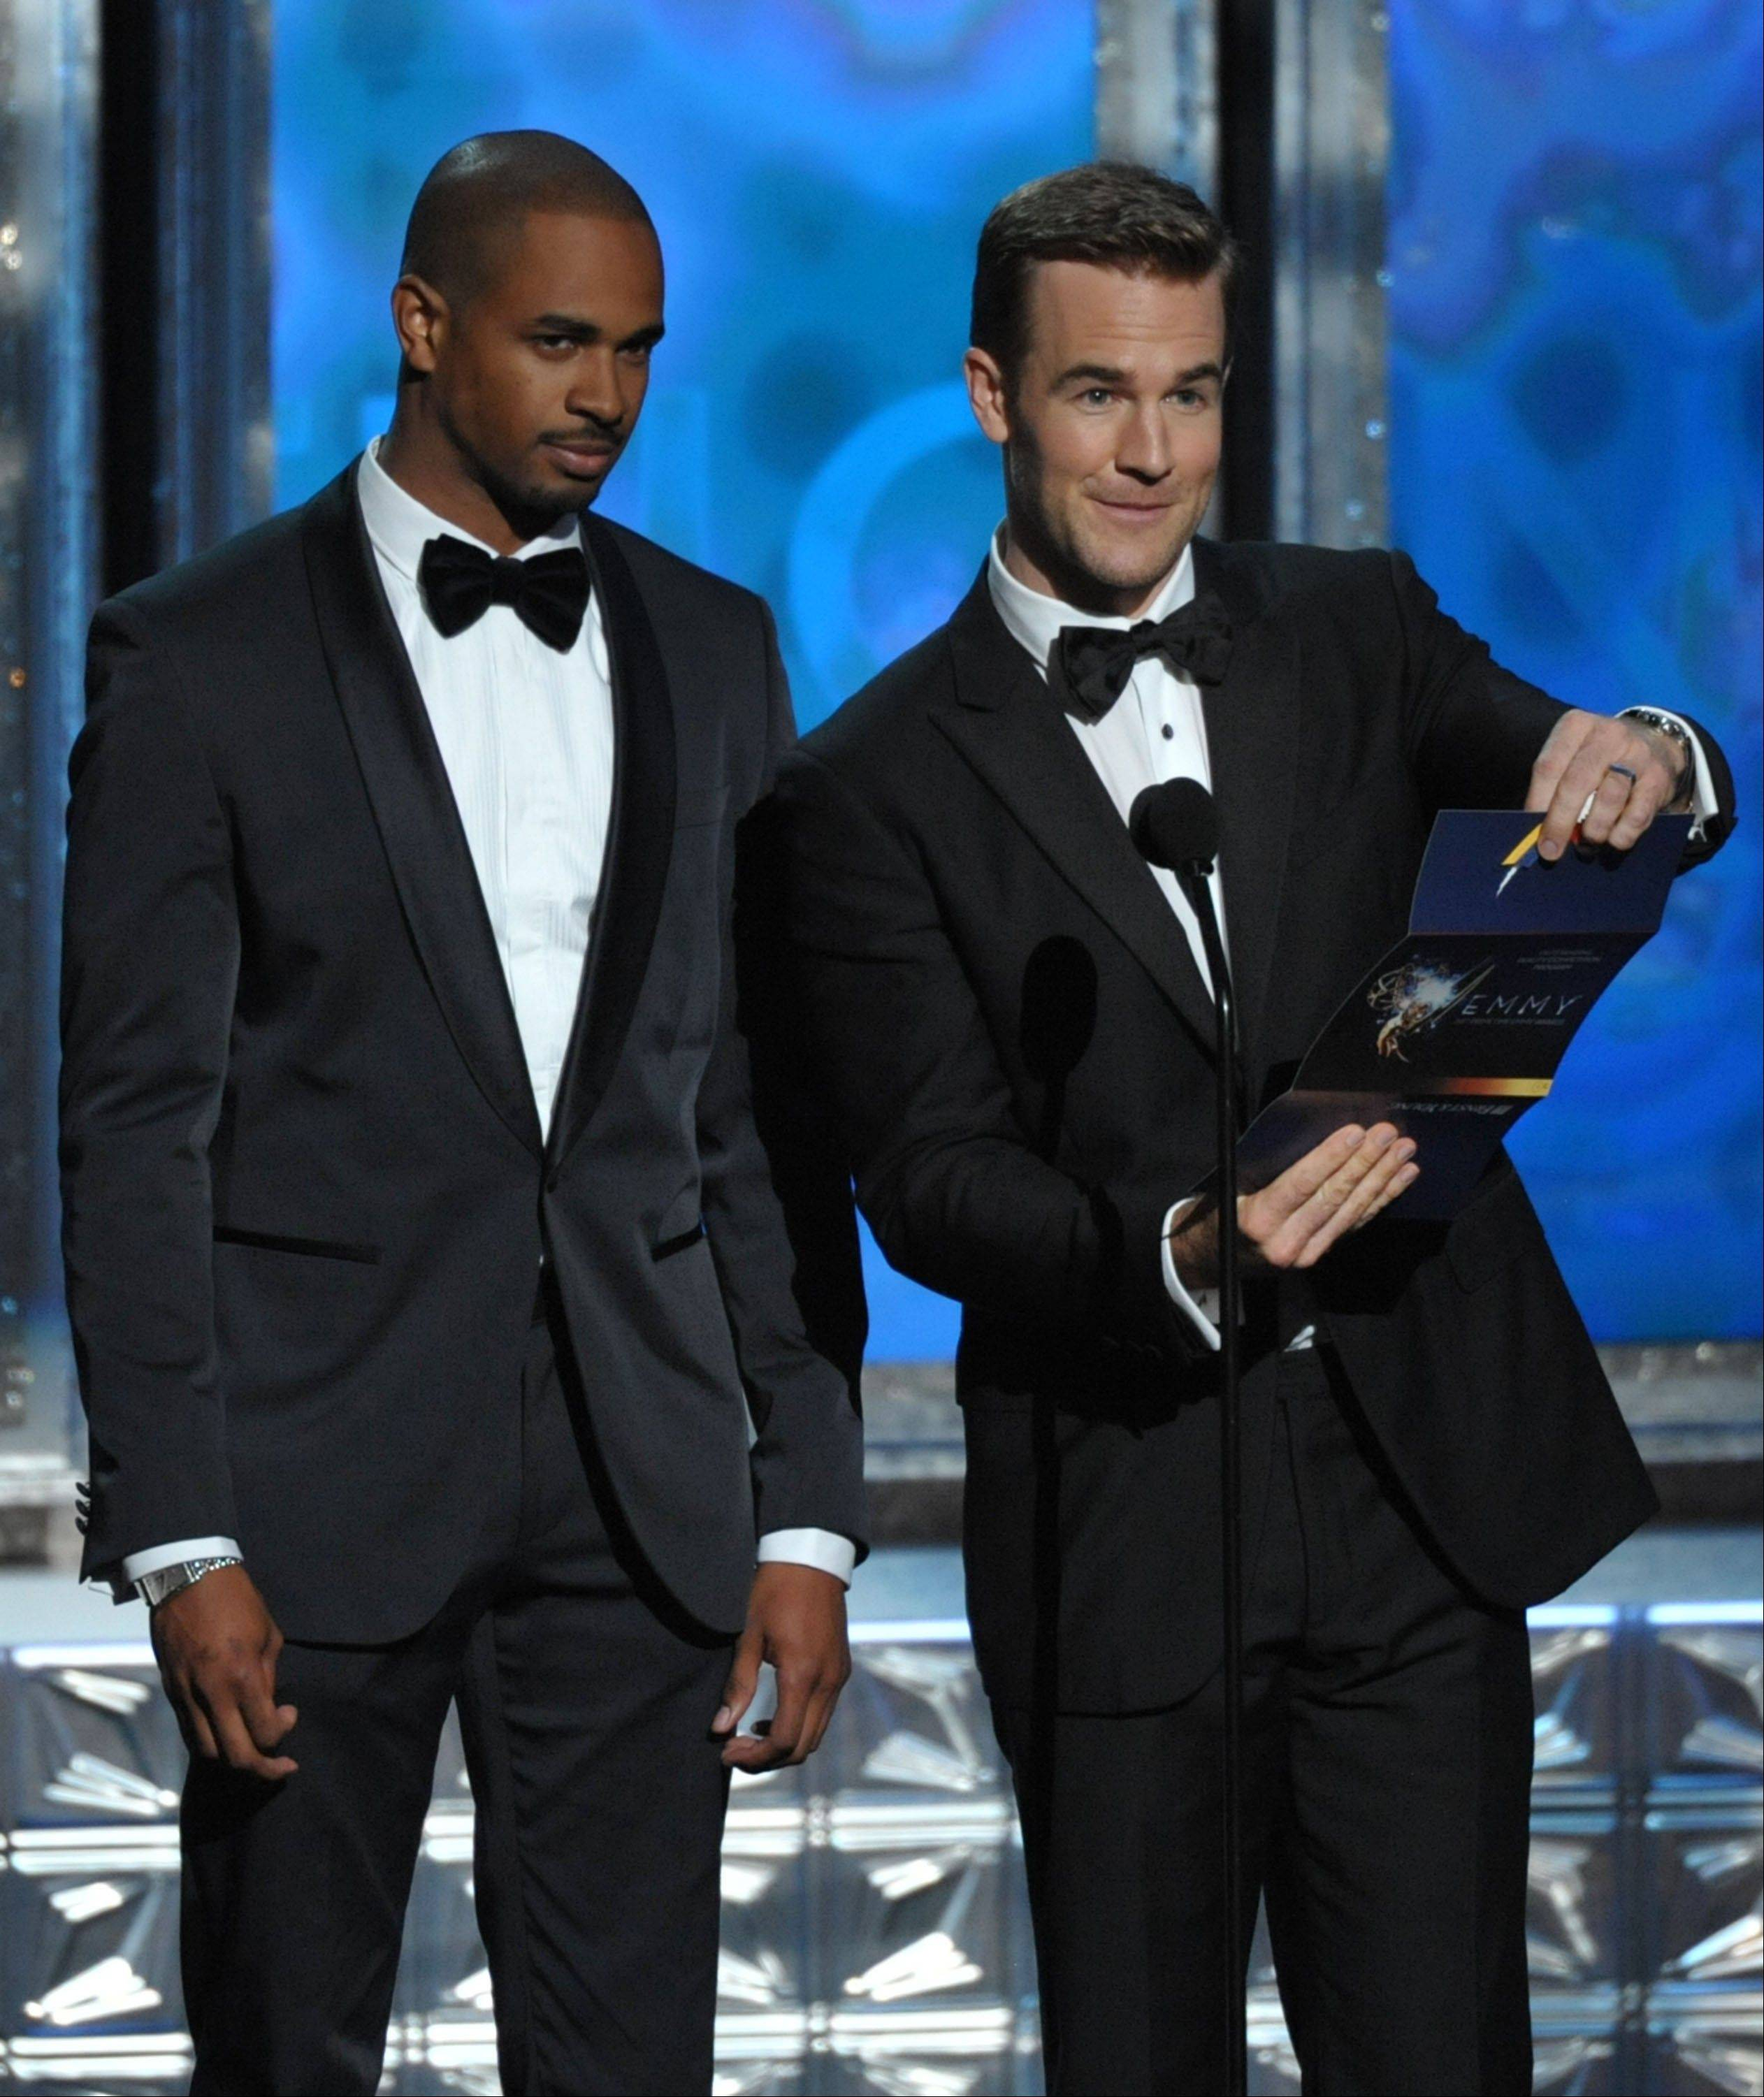 Damon Wayans Jr., left, and James Van Der Beek present an award onstage at the 64th Primetime Emmy Awards at the Nokia Theatre on Sunday, Sept. 23, 2012, in Los Angeles.